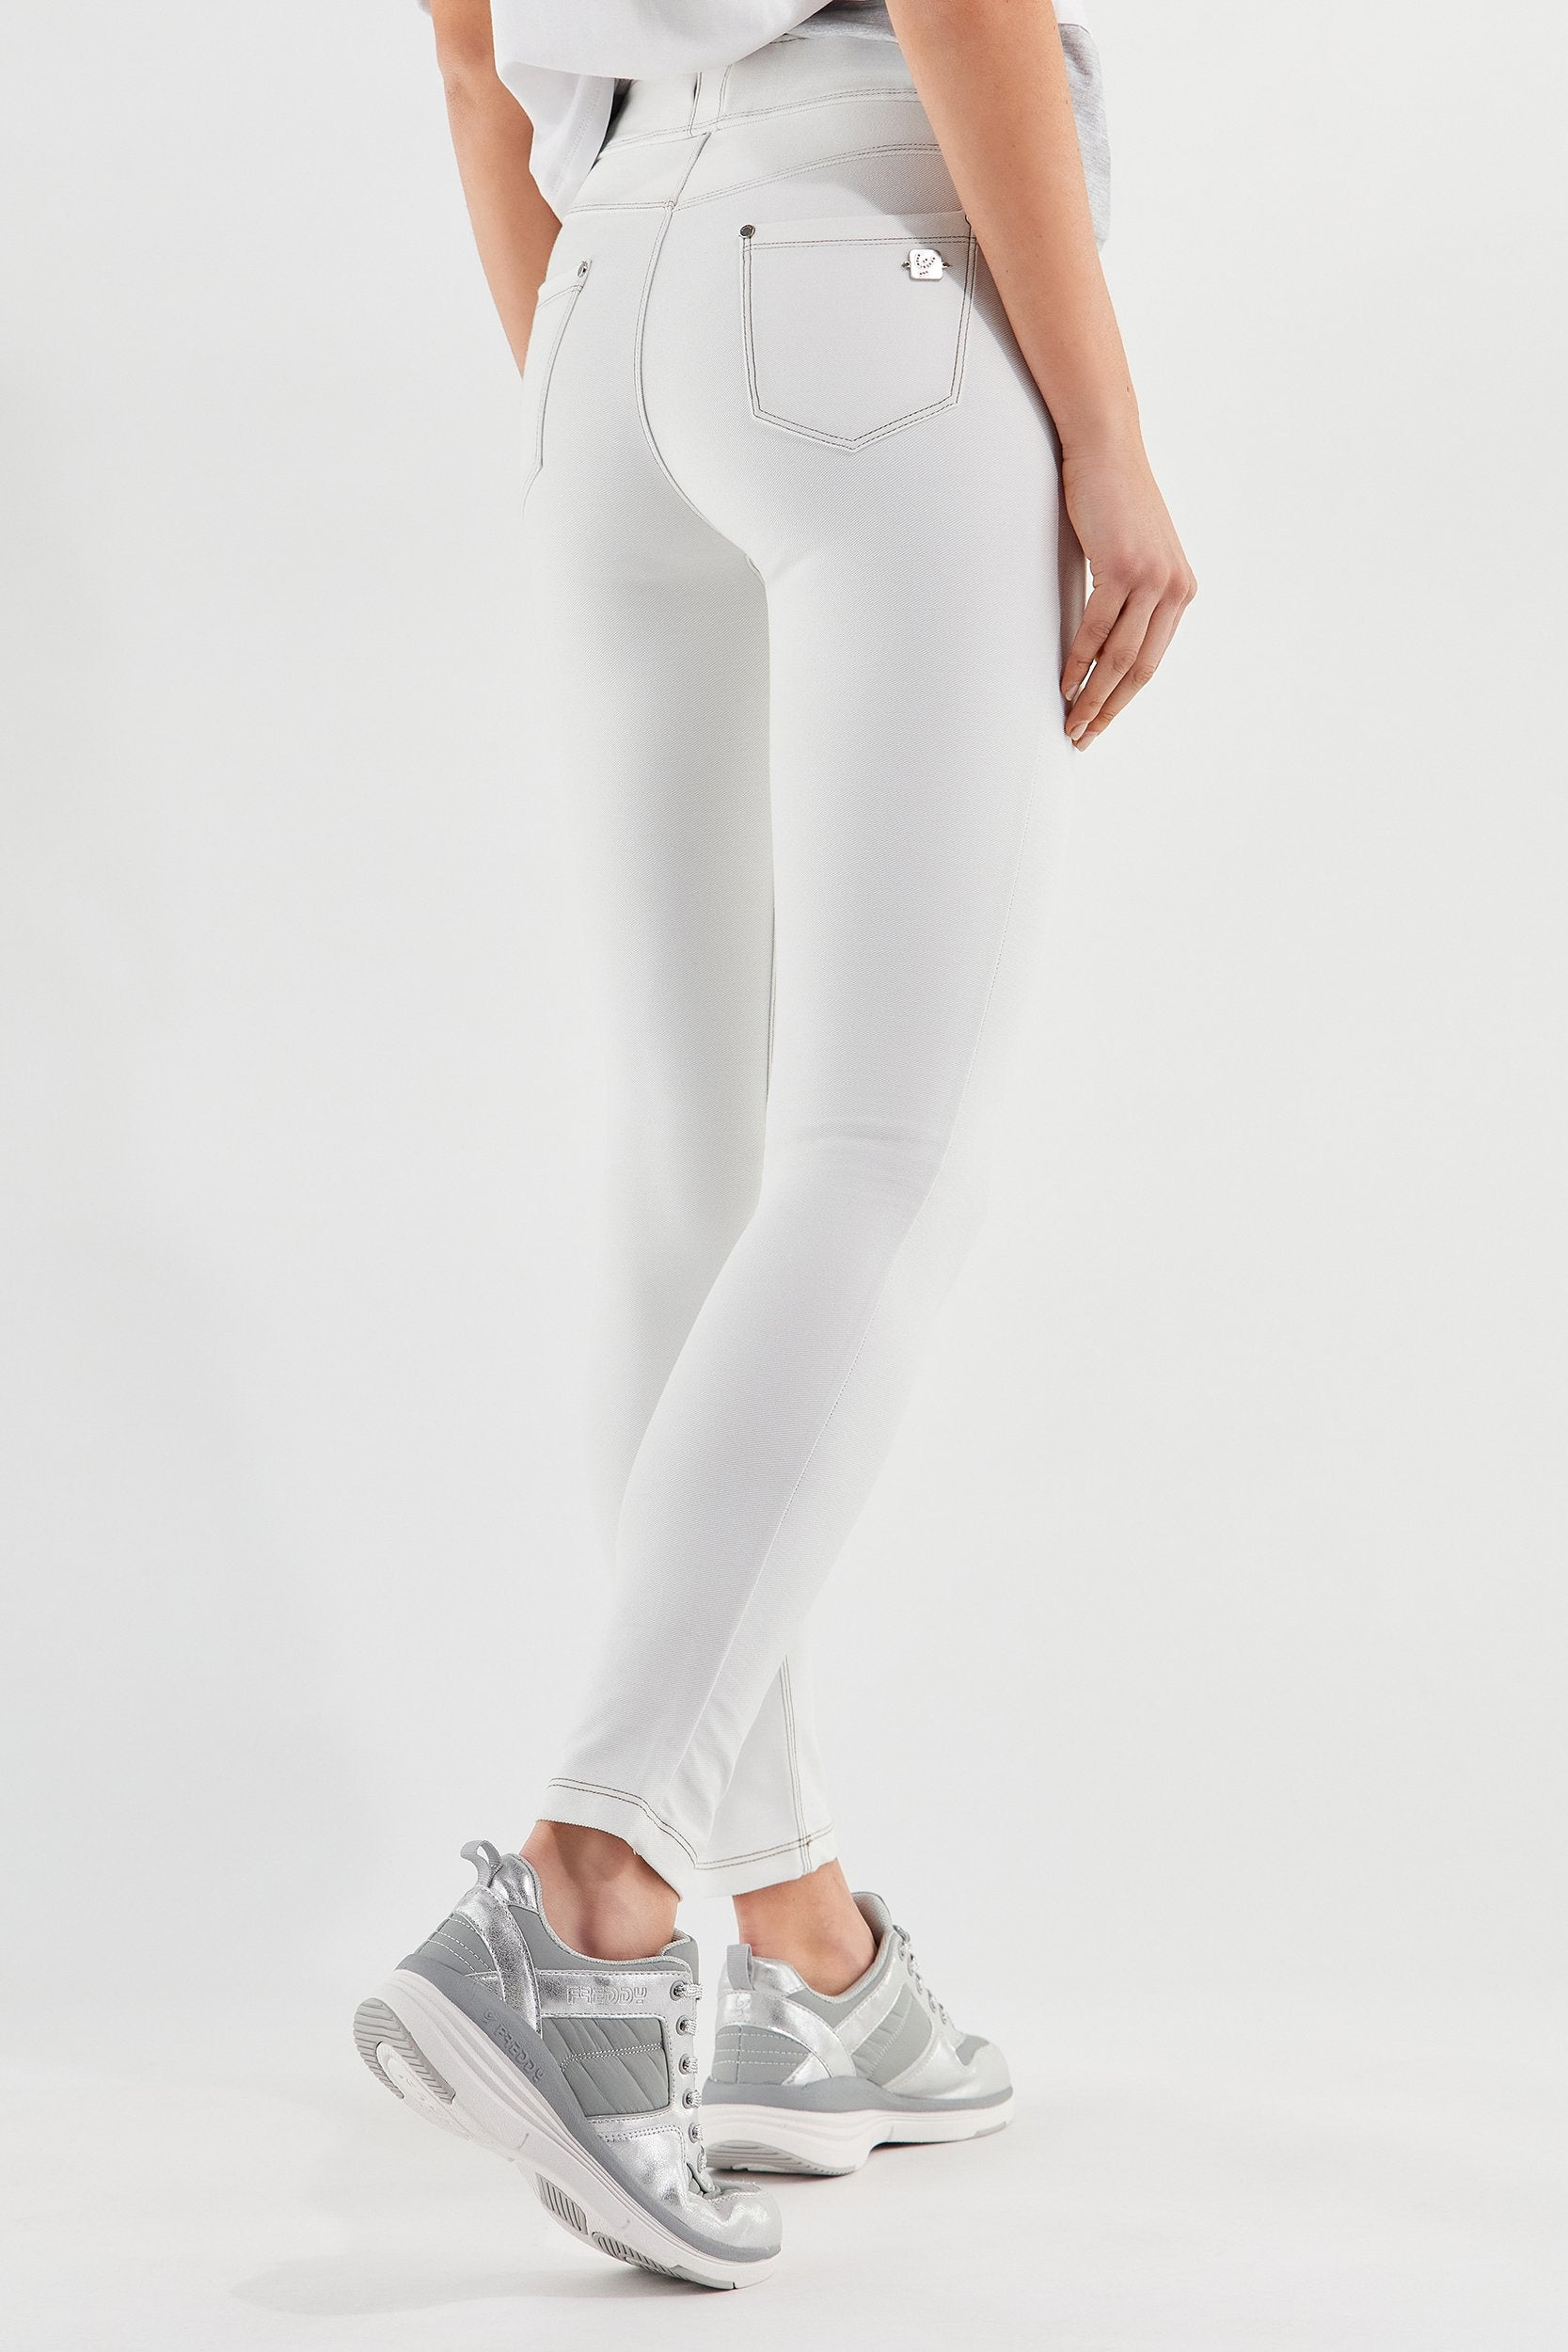 NOW 5 POCKET WHITE DENIM